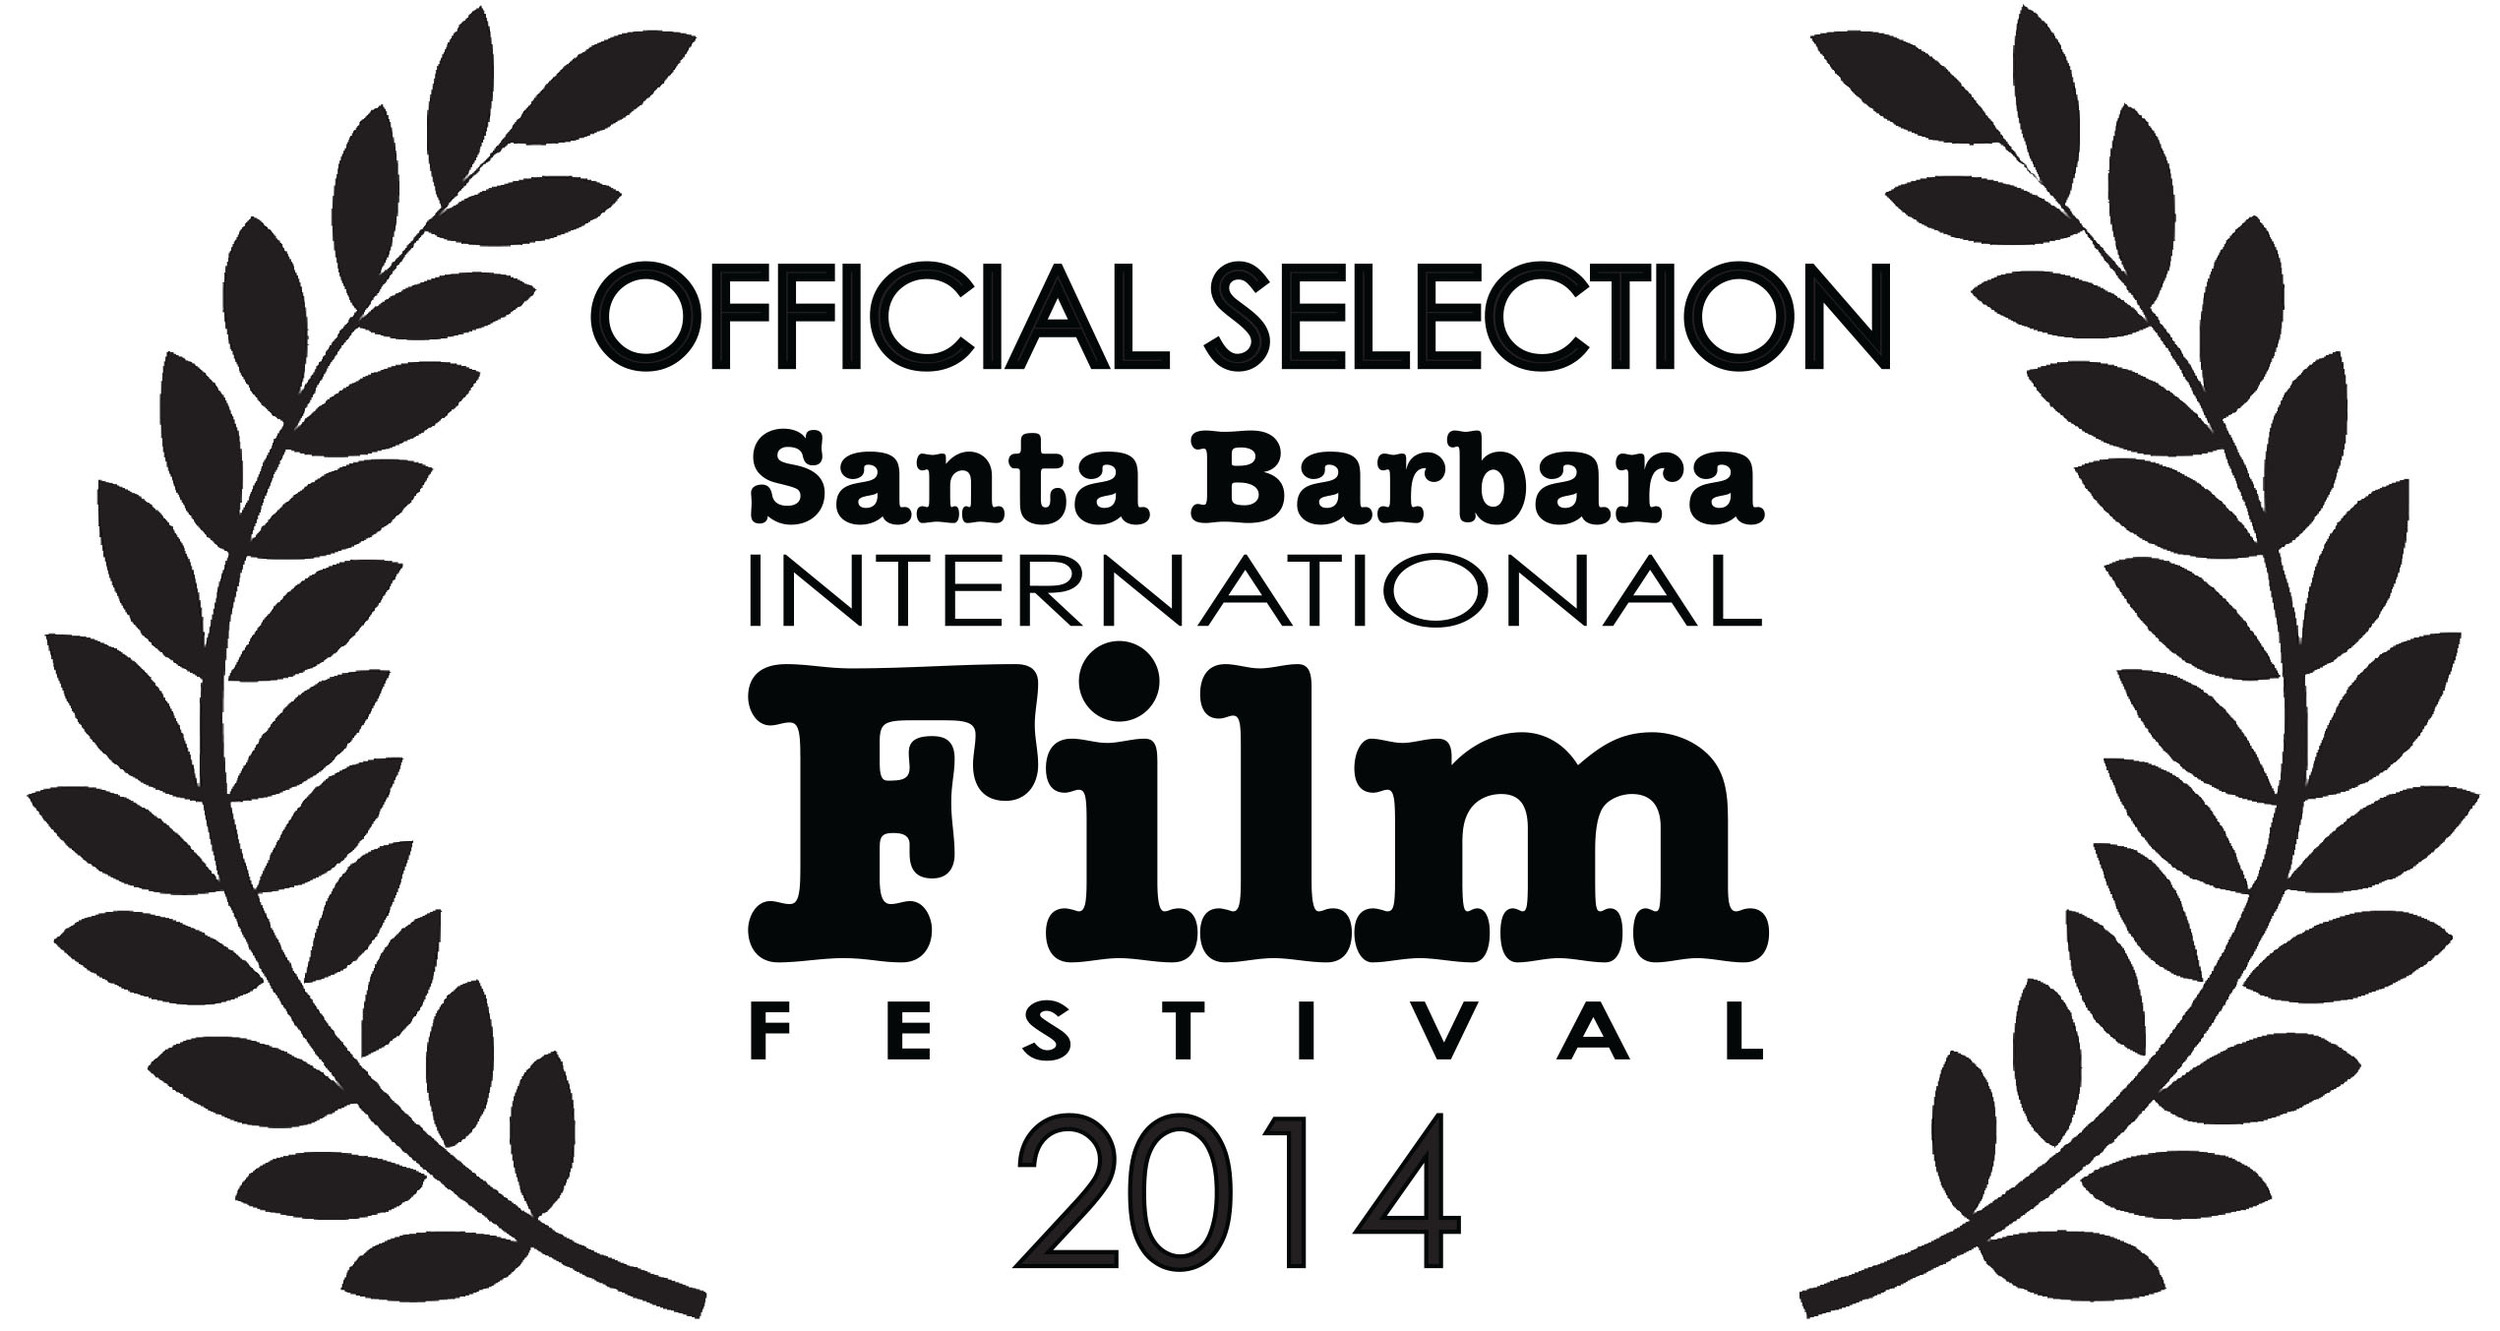 SBIFF 2014 Official Selection.jpg